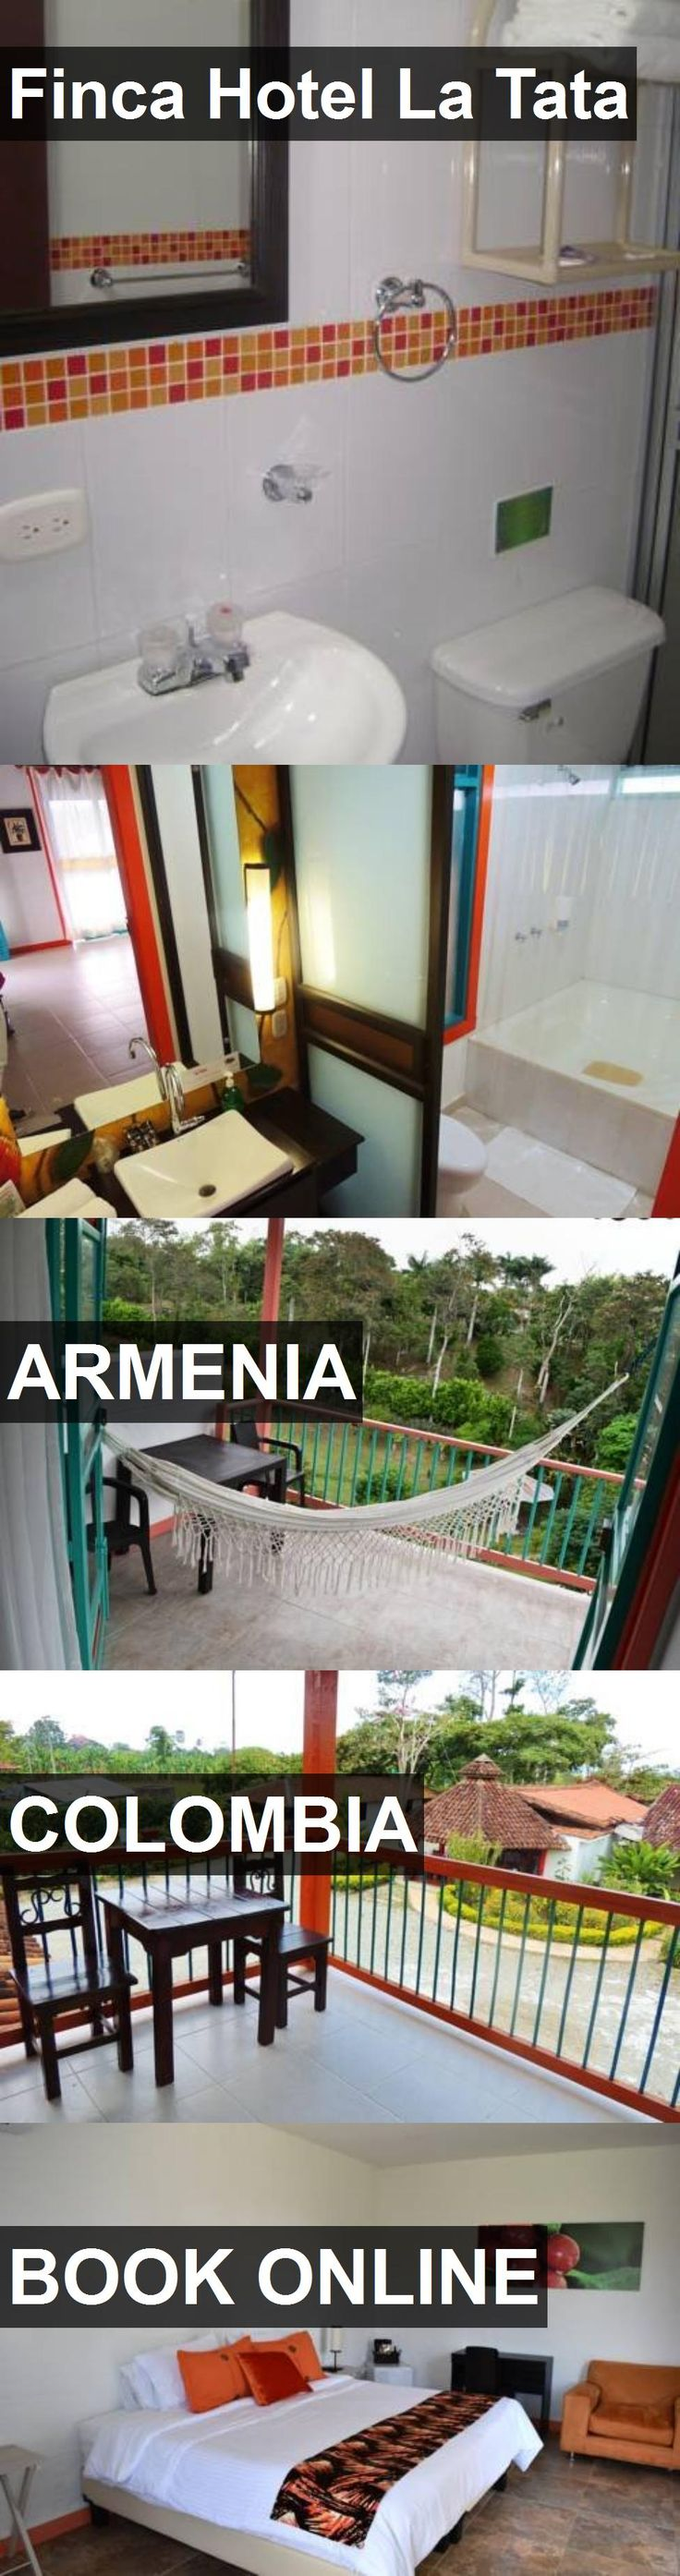 Finca Hotel La Tata in Armenia, Colombia. For more information, photos, reviews and best prices please follow the link. #Colombia #Armenia #travel #vacation #hotel